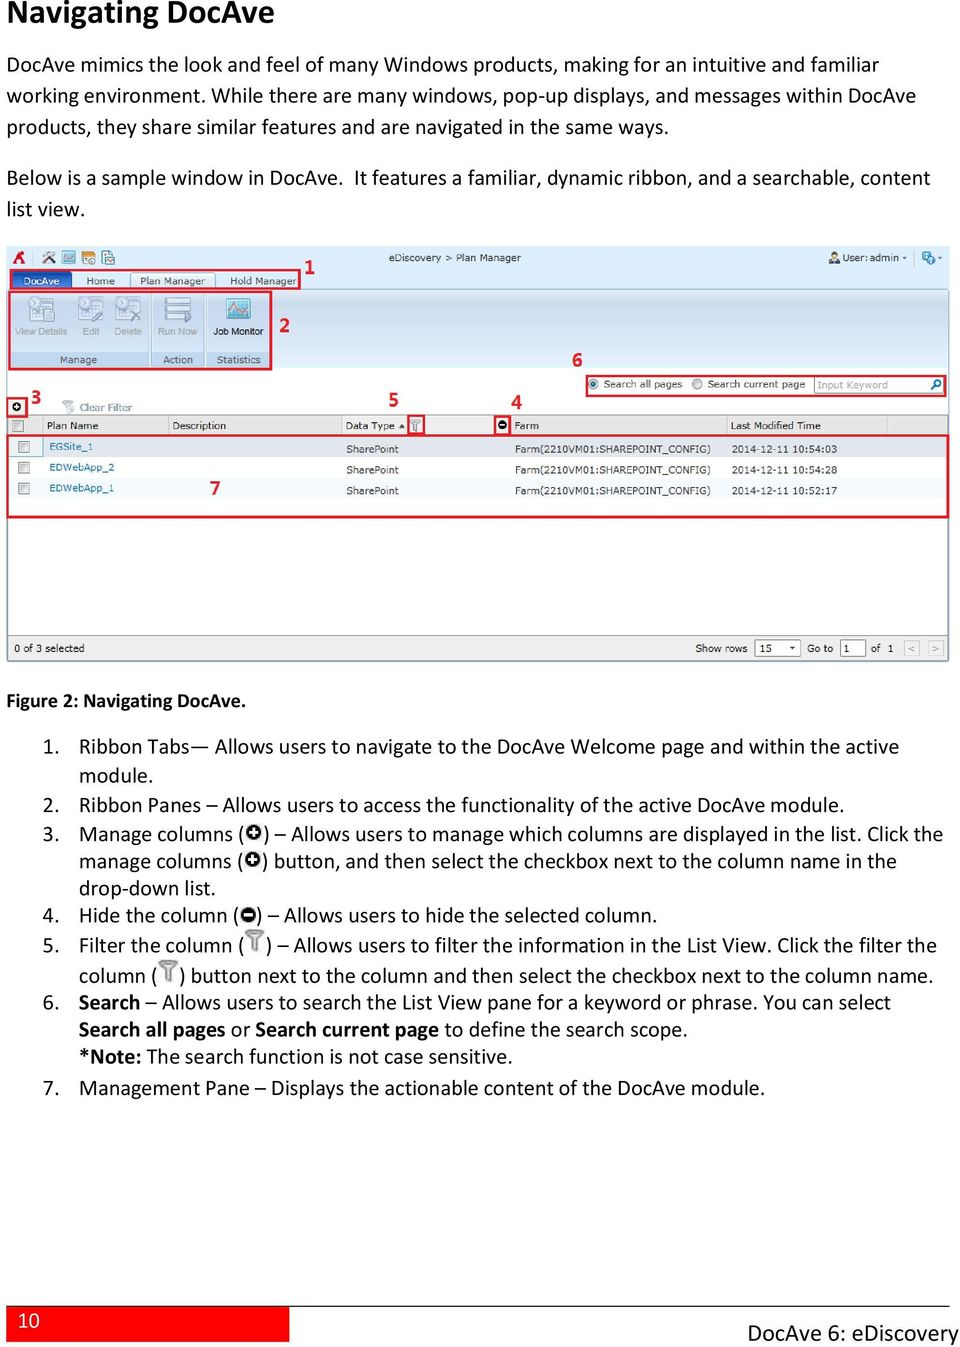 It features a familiar, dynamic ribbn, and a searchable, cntent list view. Figure 2: Navigating DcAve. 1. Ribbn Tabs Allws users t navigate t the DcAve Welcme page and within the active mdule. 2. Ribbn Panes Allws users t access the functinality f the active DcAve mdule.